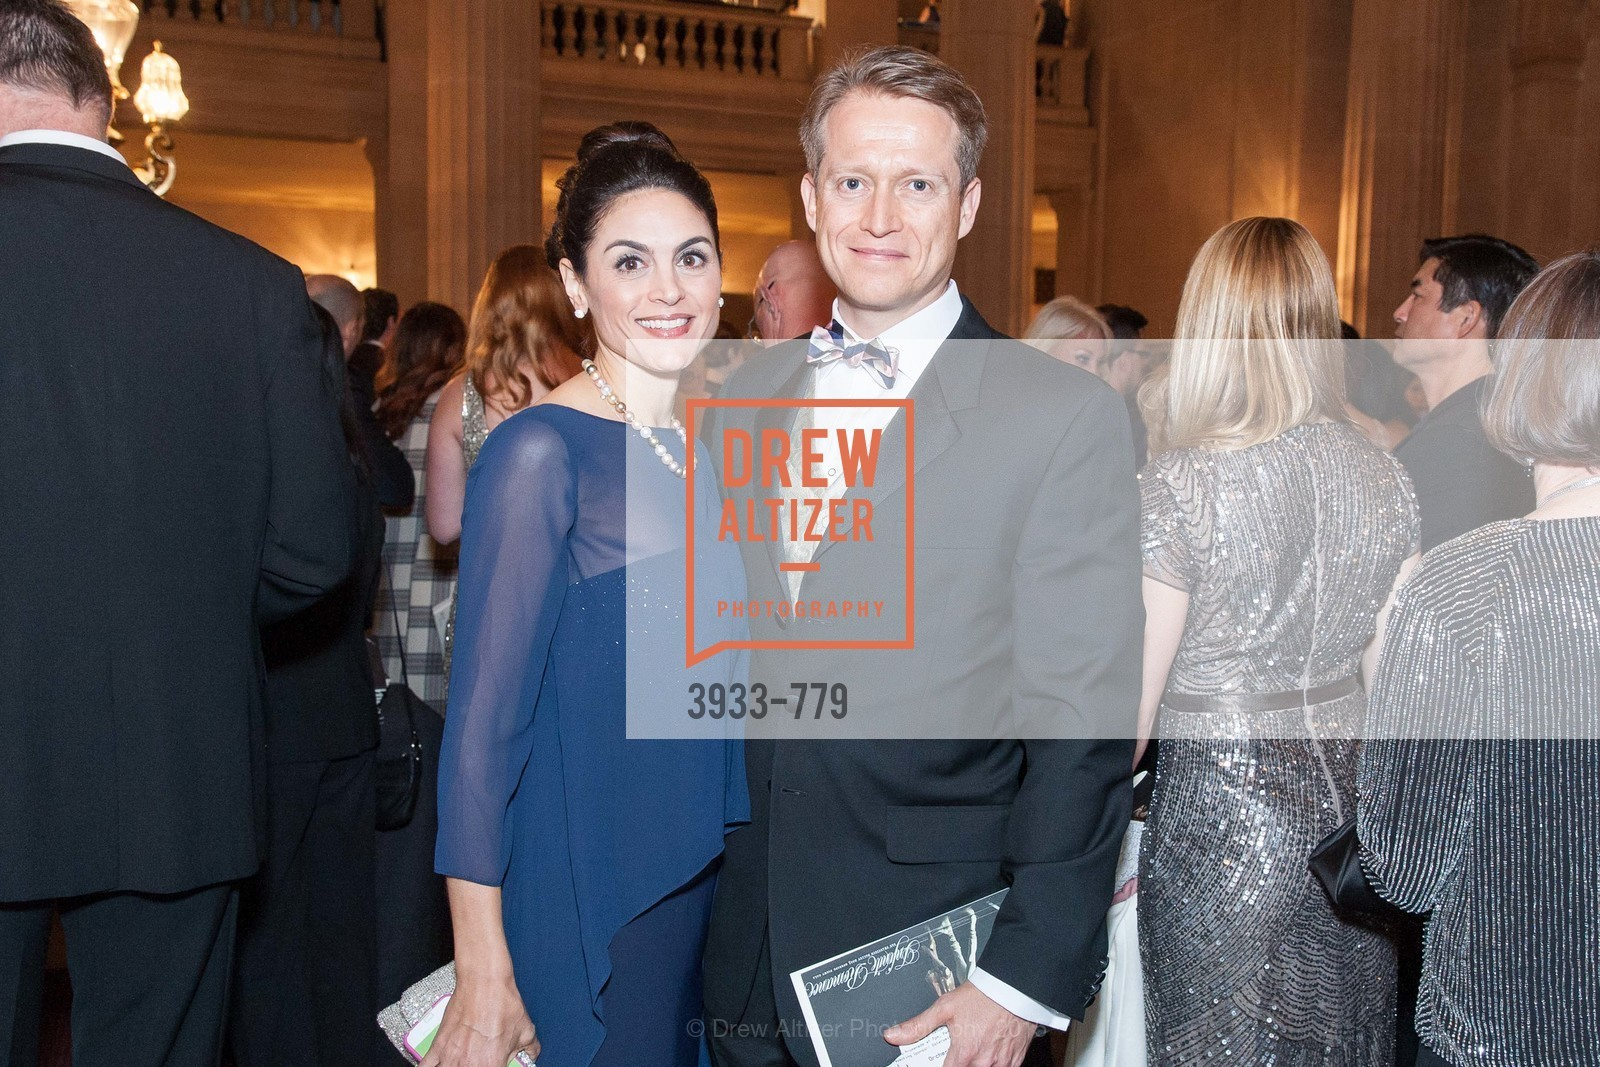 Top Picks, San Francisco Ballet 2015 Opening Night Gala, January 22nd, 2015, Photo,Drew Altizer, Drew Altizer Photography, full-service agency, private events, San Francisco photographer, photographer california